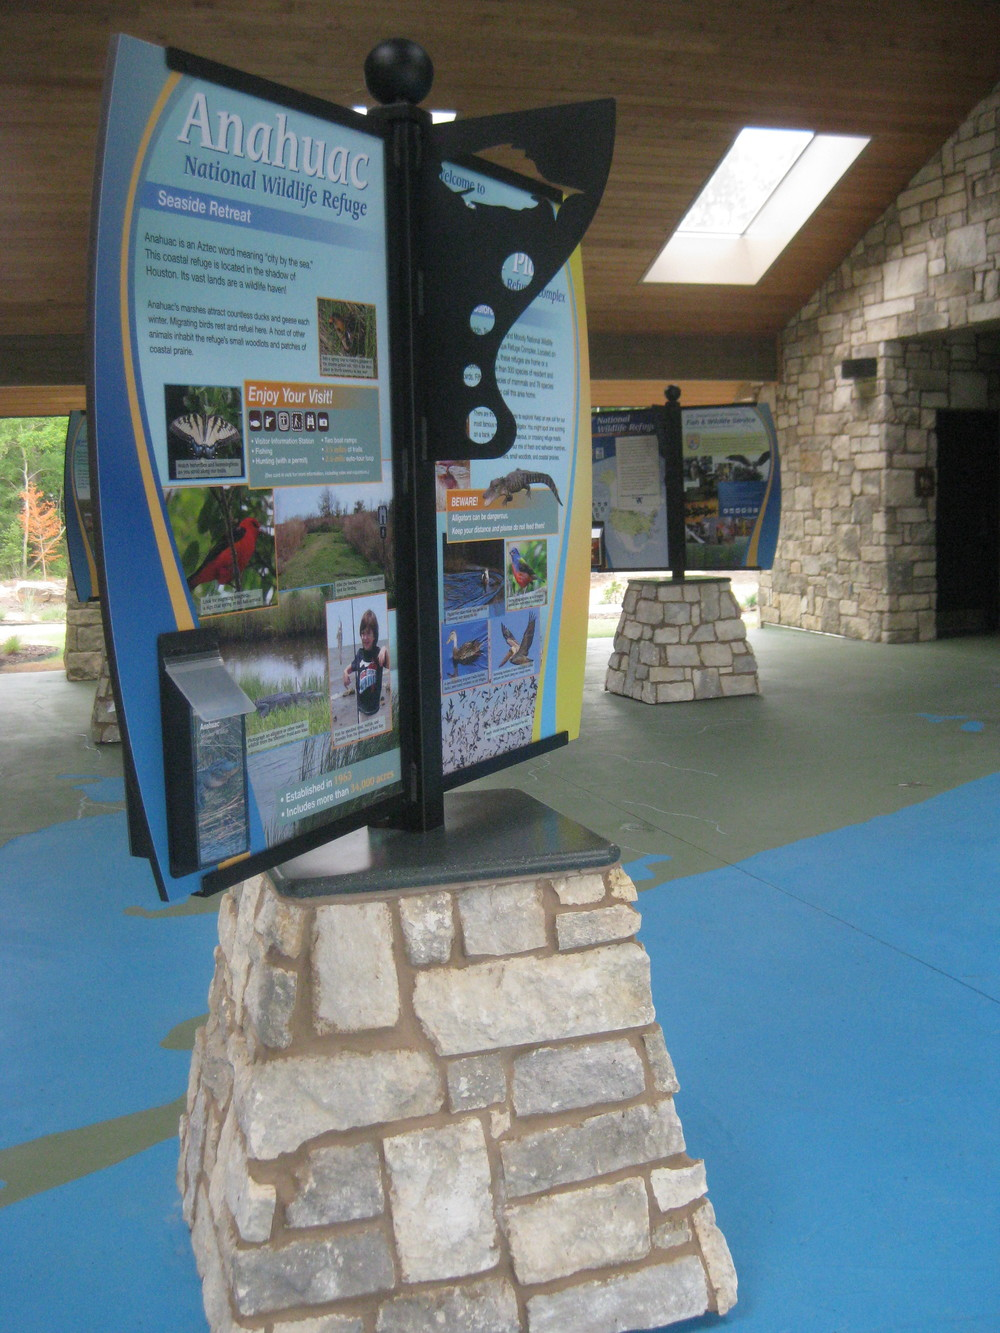 Outdoor kiosks feature custom stone work to match the existing breezeway walls. Decorative powder-coated metal mounts hold fiberglass embedment panels that are easily cleaned or replaced if vandalized.